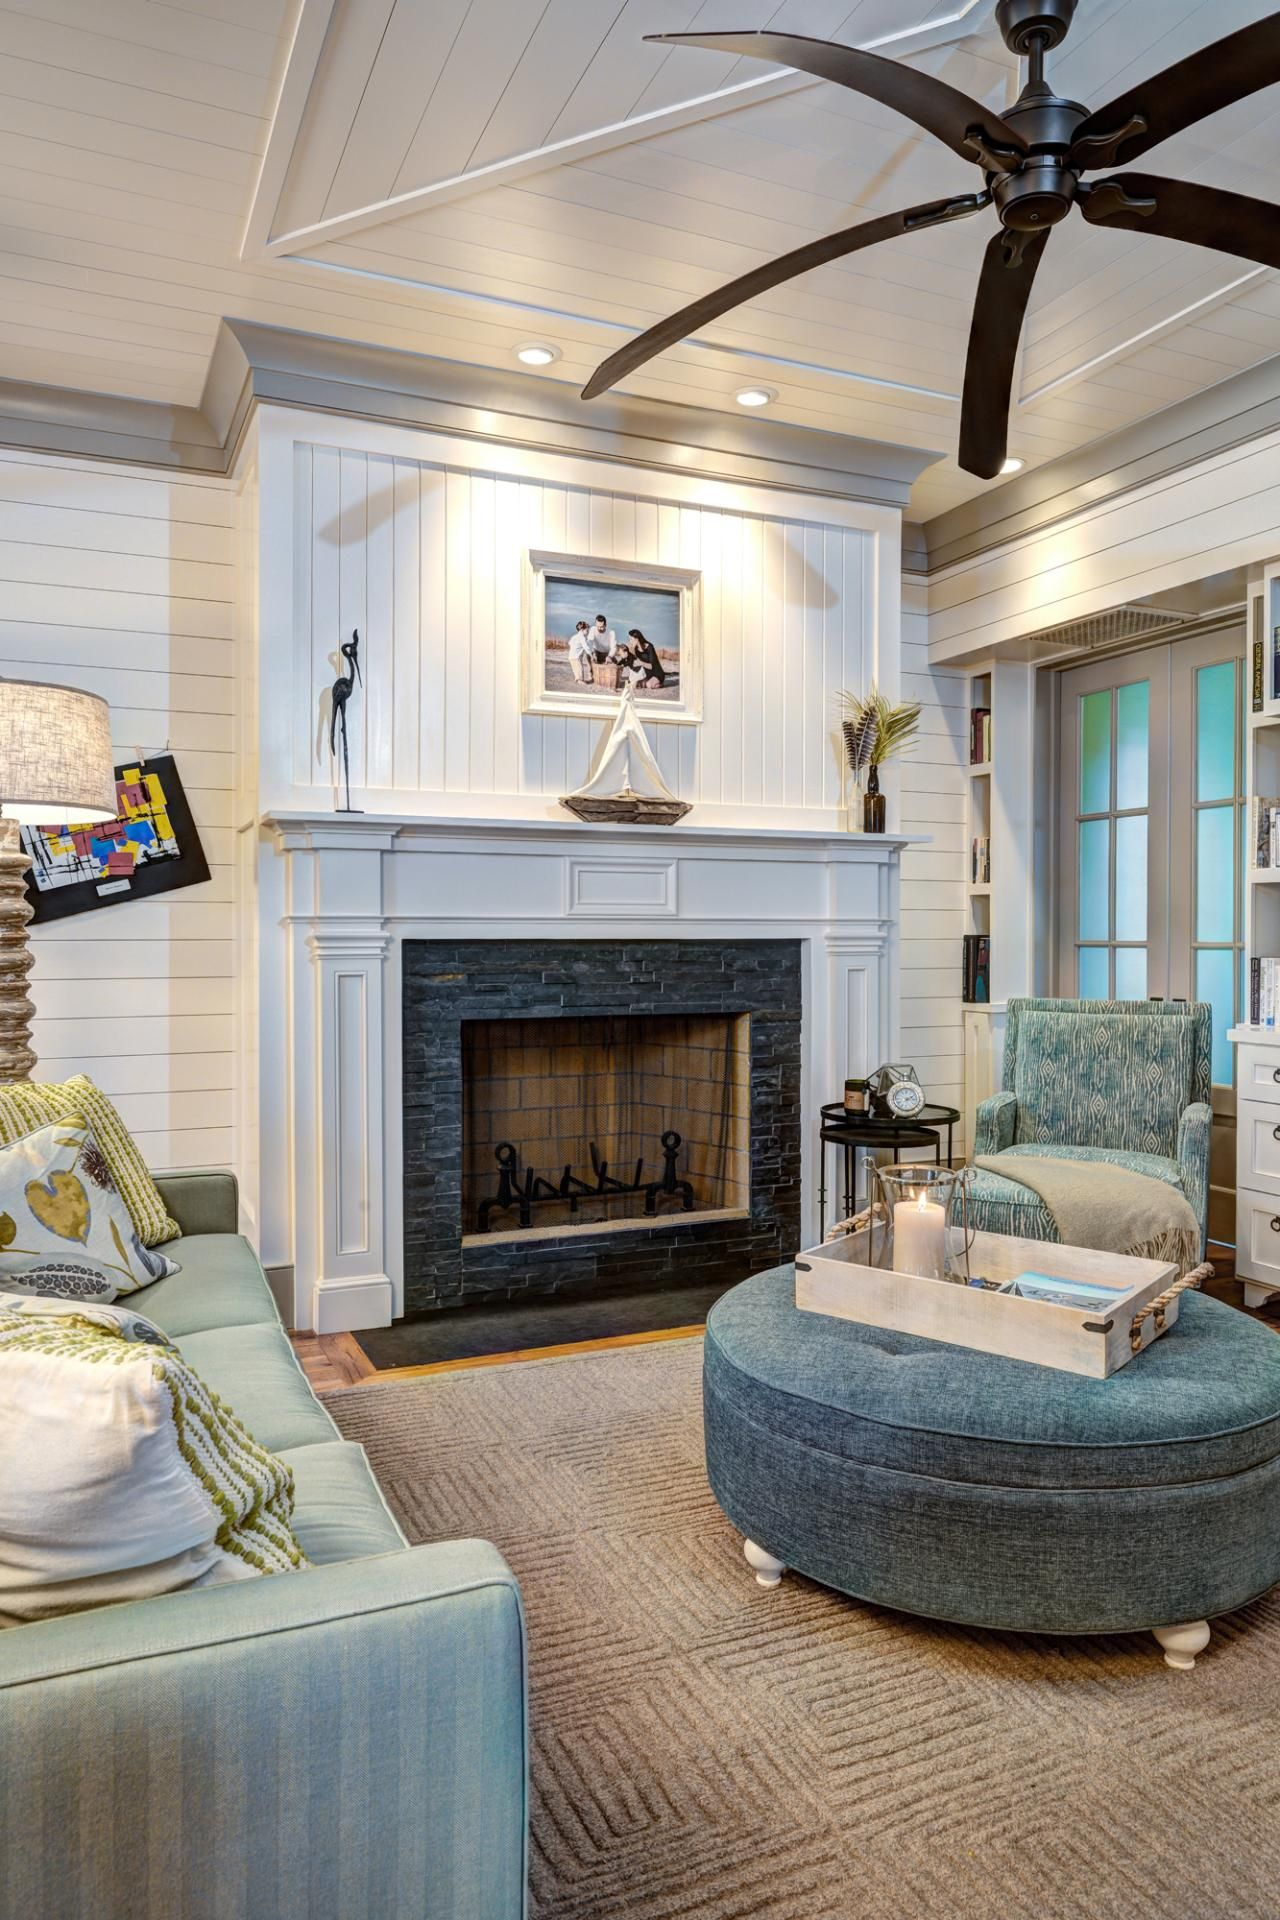 Living Room With Tiled Fireplace Large Ceiling Fan And Coastal Accents Hgtv